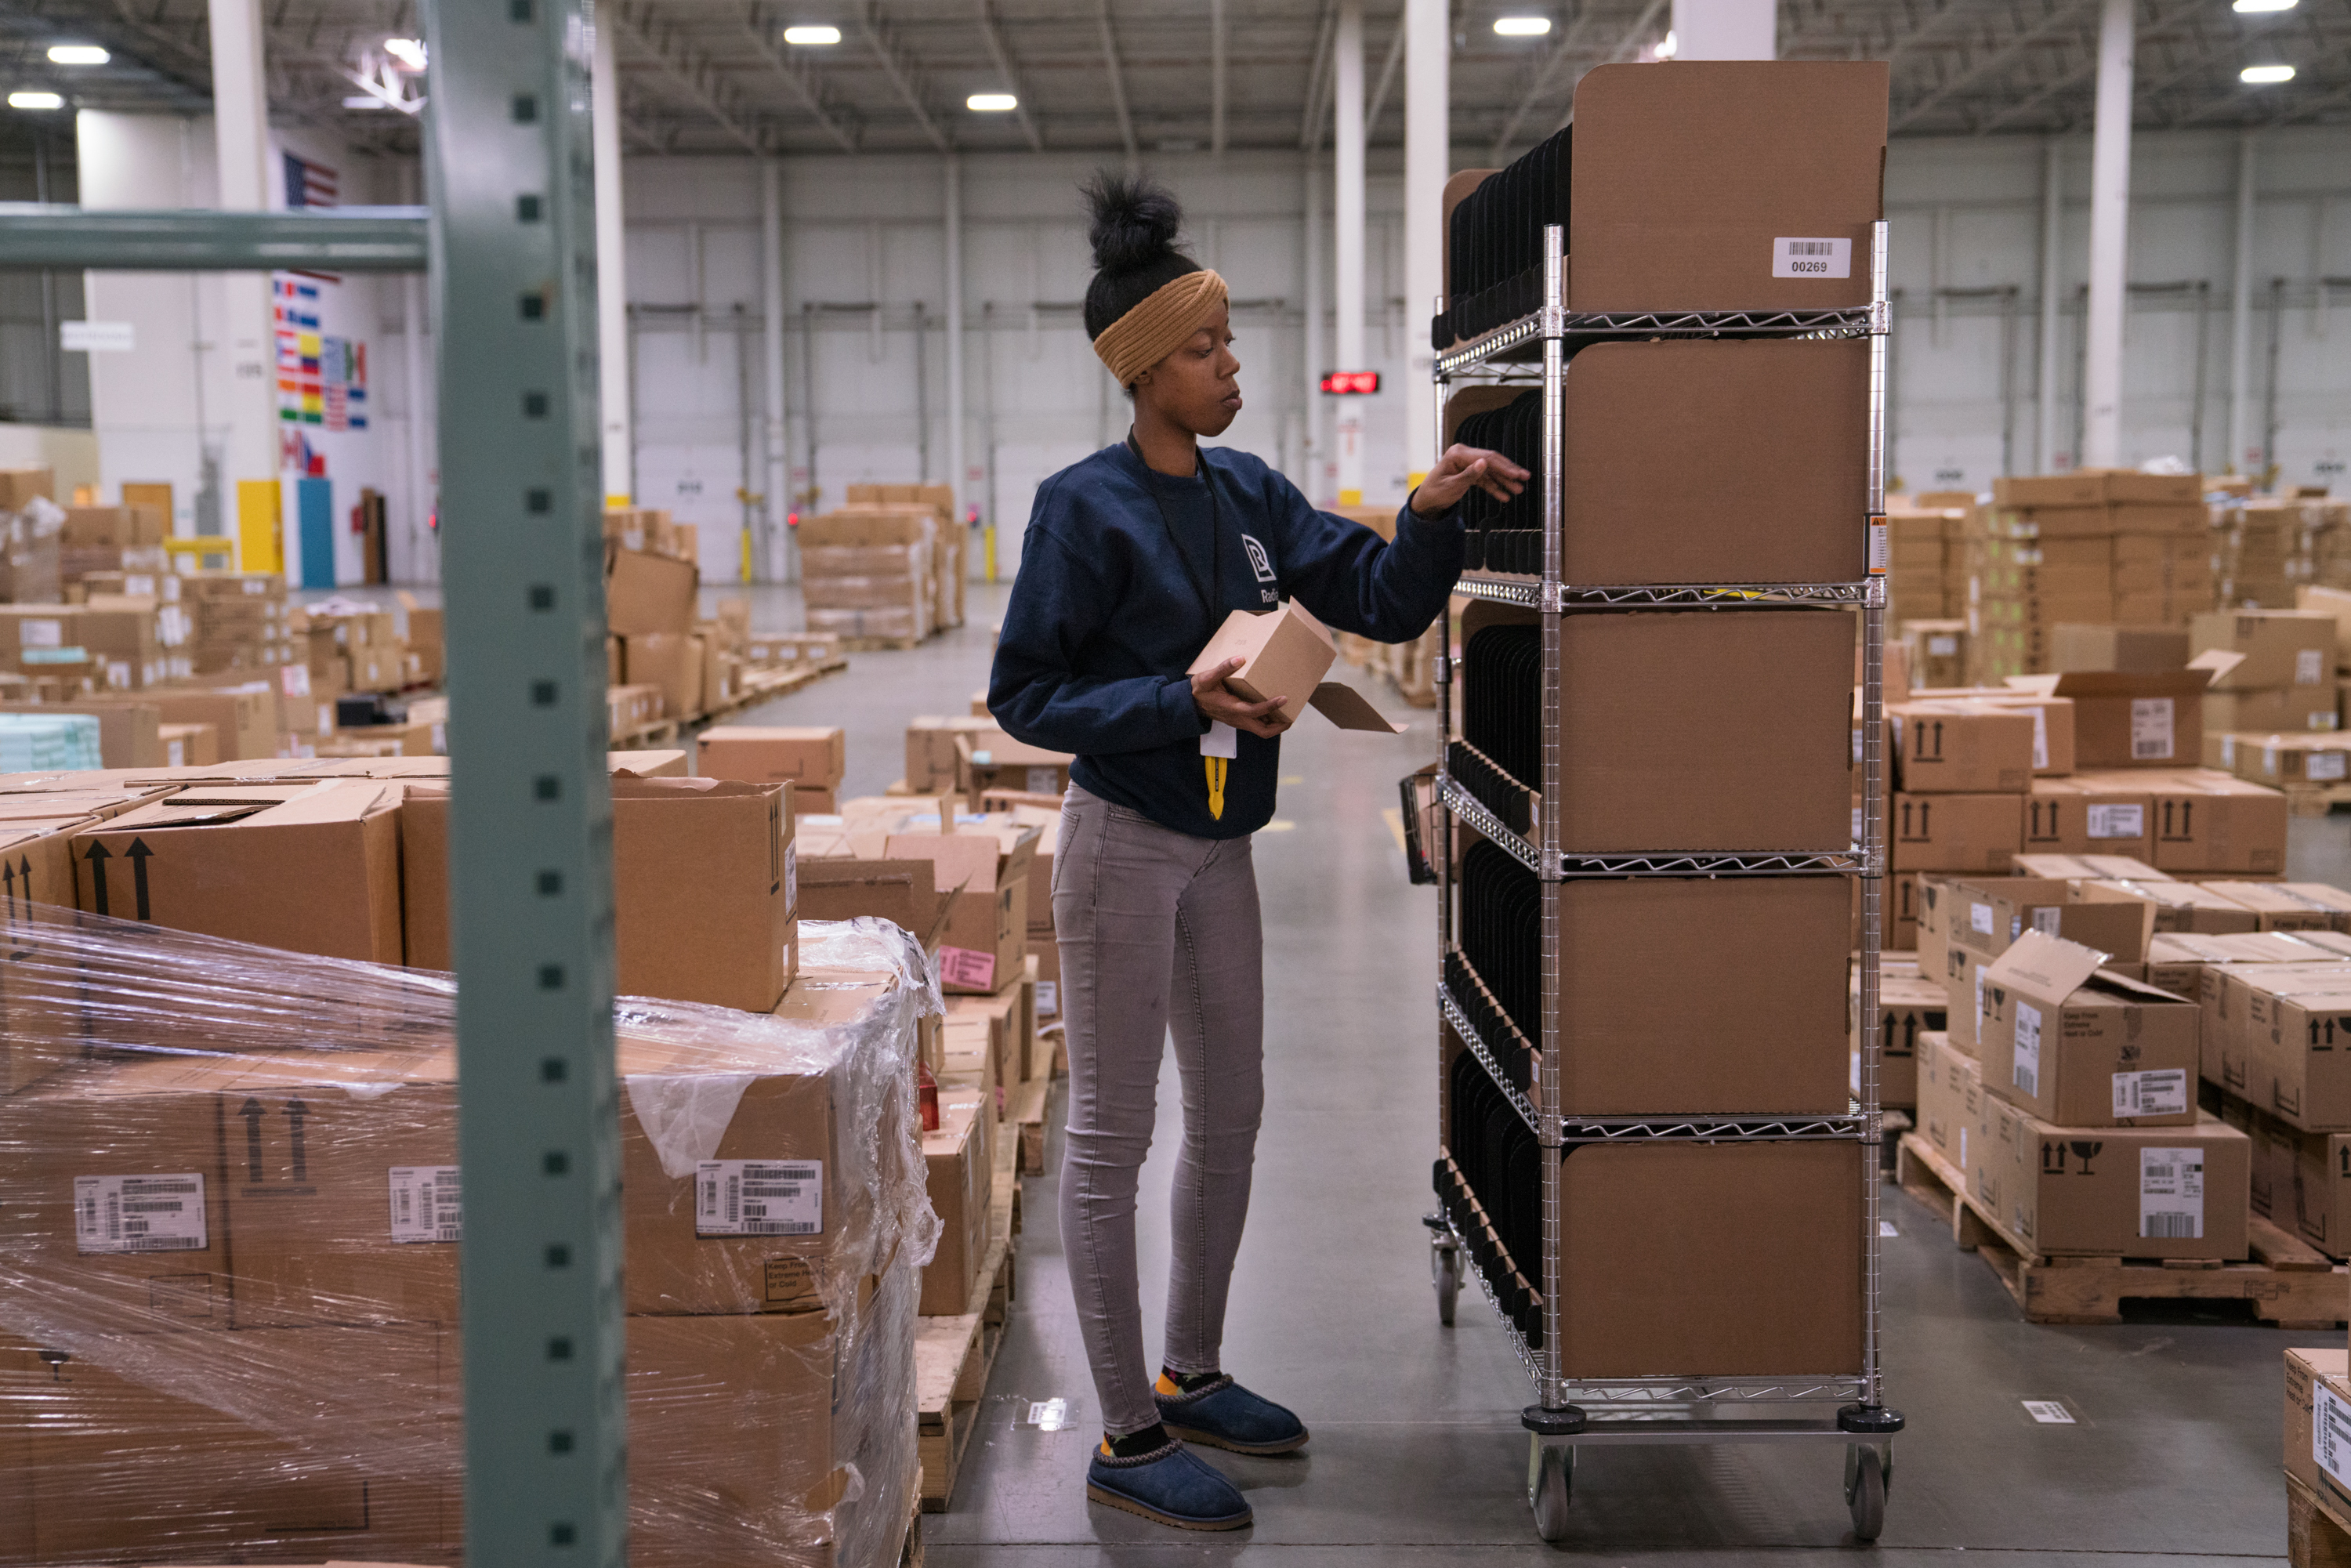 'Don't Think A Robot Could Do This': Warehouse Workers Aren't Worried For Their Jobs